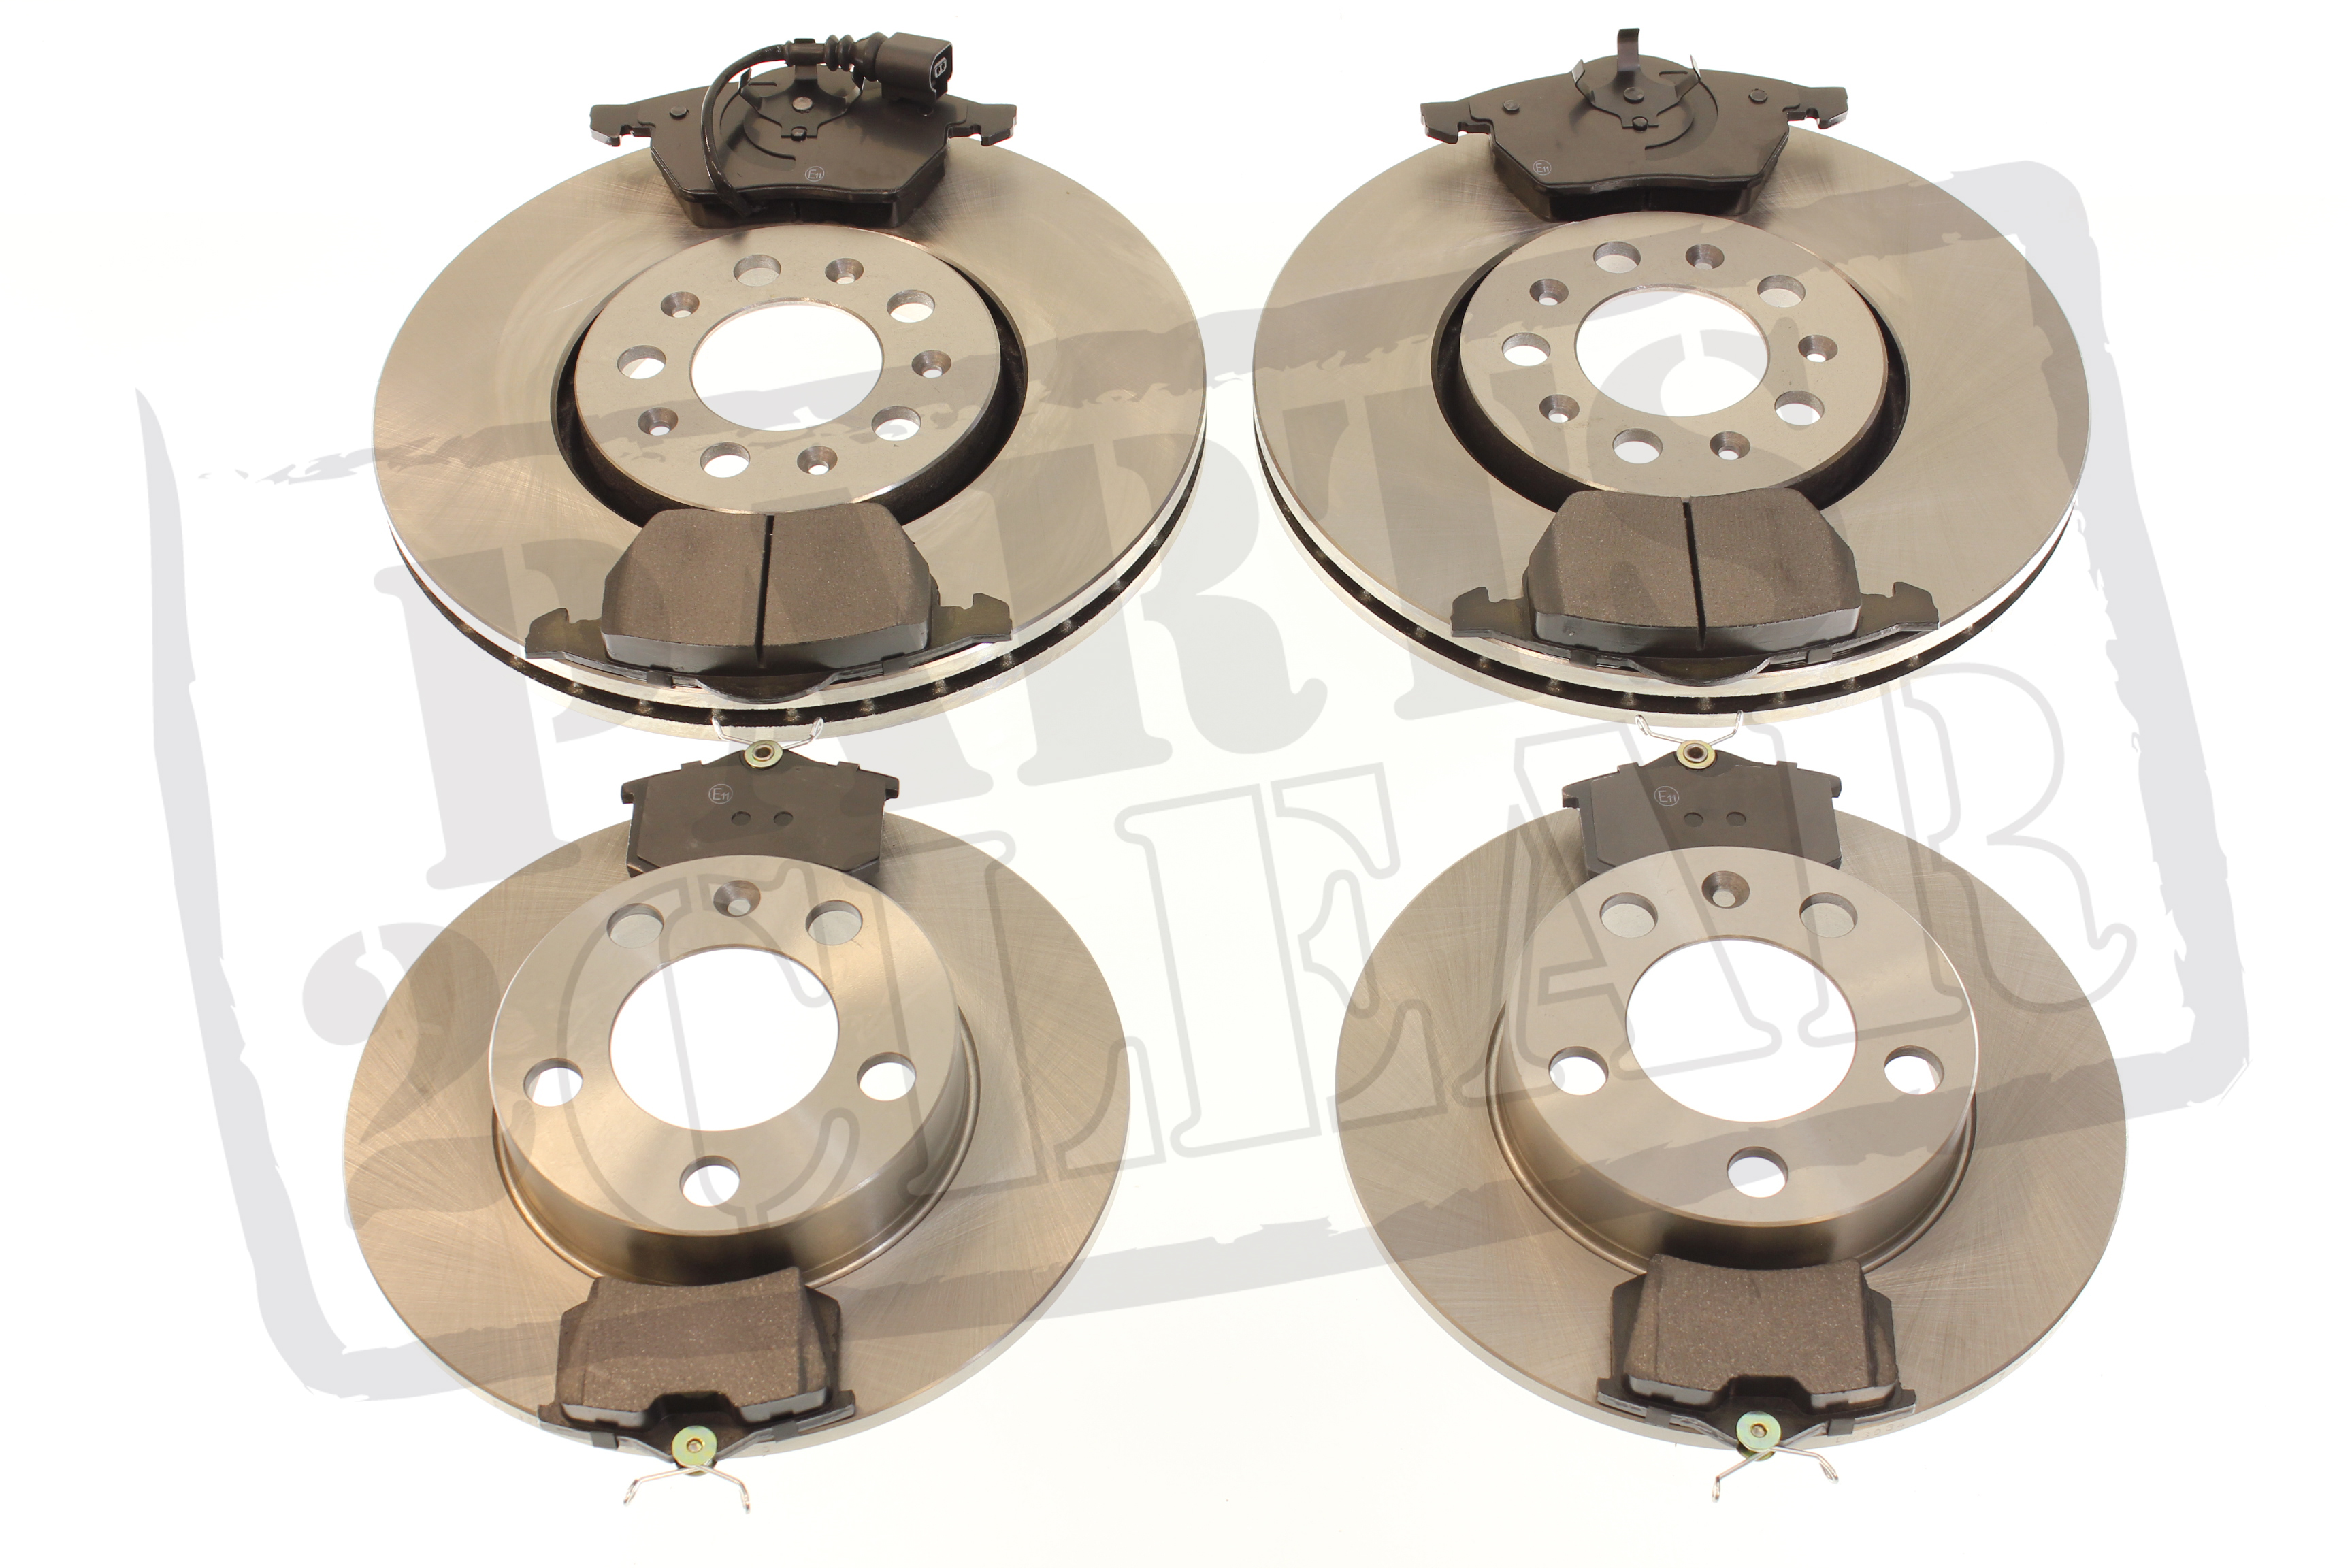 skoda fabia front rear brake pads discs 1 0 1 2 1 4 1 6 1 9 2 0 sdi tdi vrs ebay. Black Bedroom Furniture Sets. Home Design Ideas